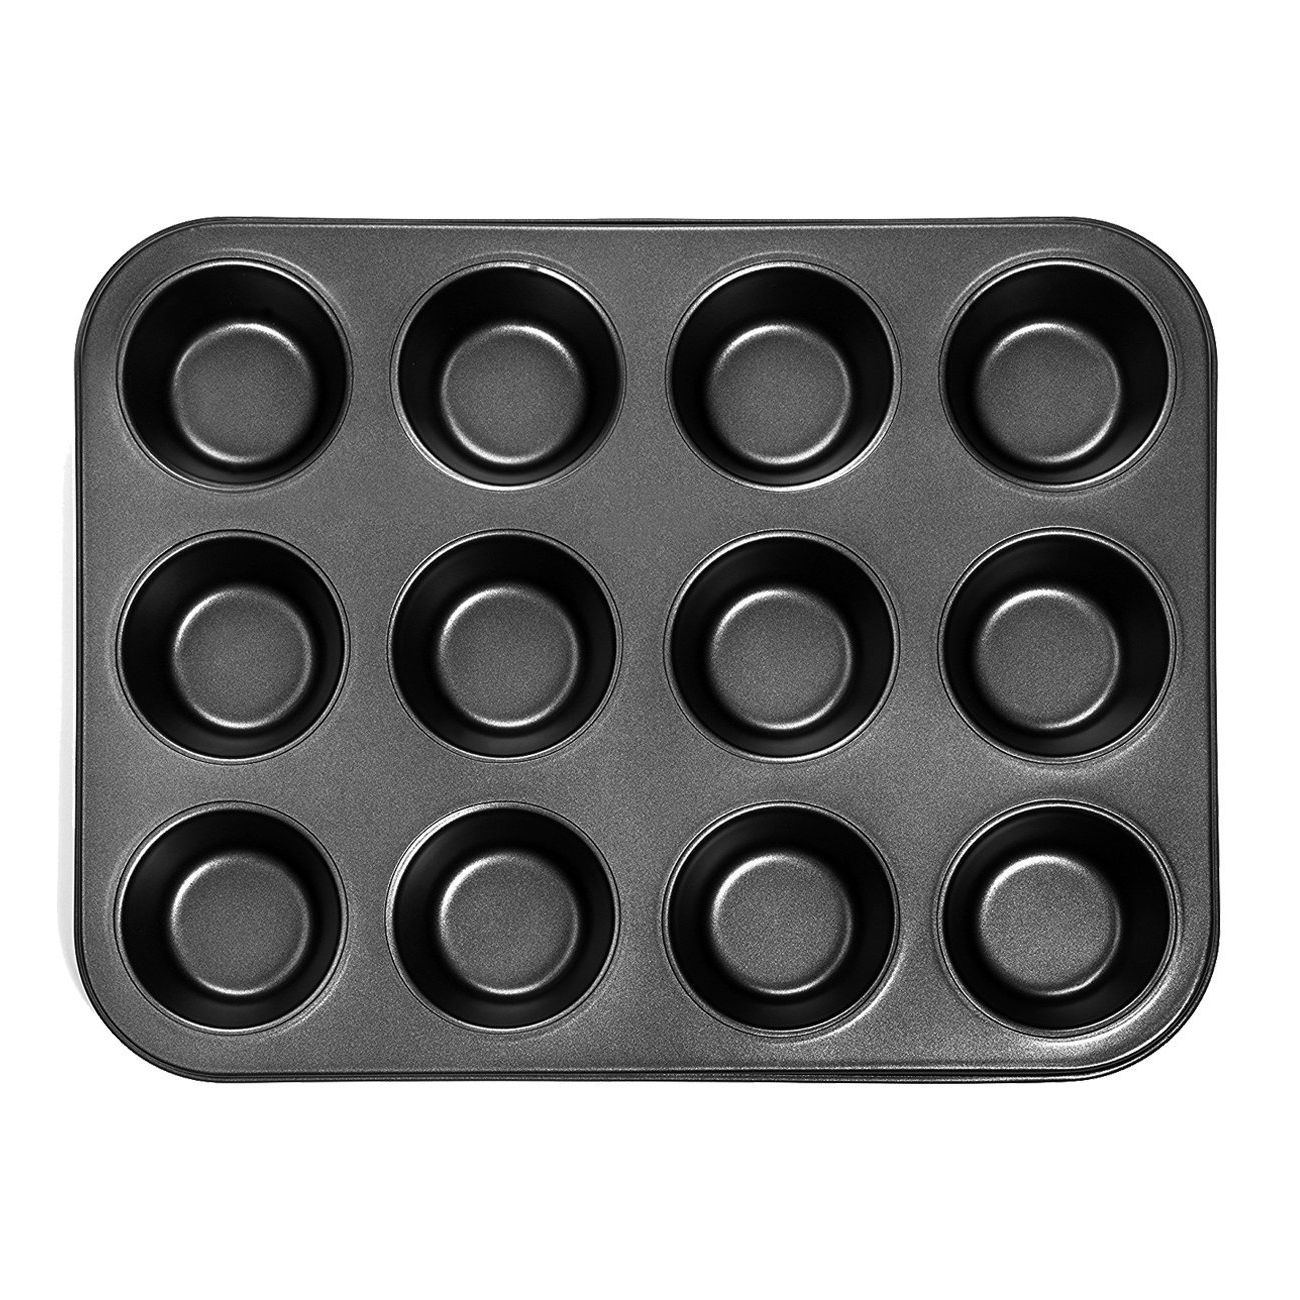 SDFC-Heavy Duty Carbon Steel Cupcake Baking Tray,12 Mini Cup Cupcake Shaped Cake Pan,nonstick Cupcake Baking Tray, Cupcake Mol